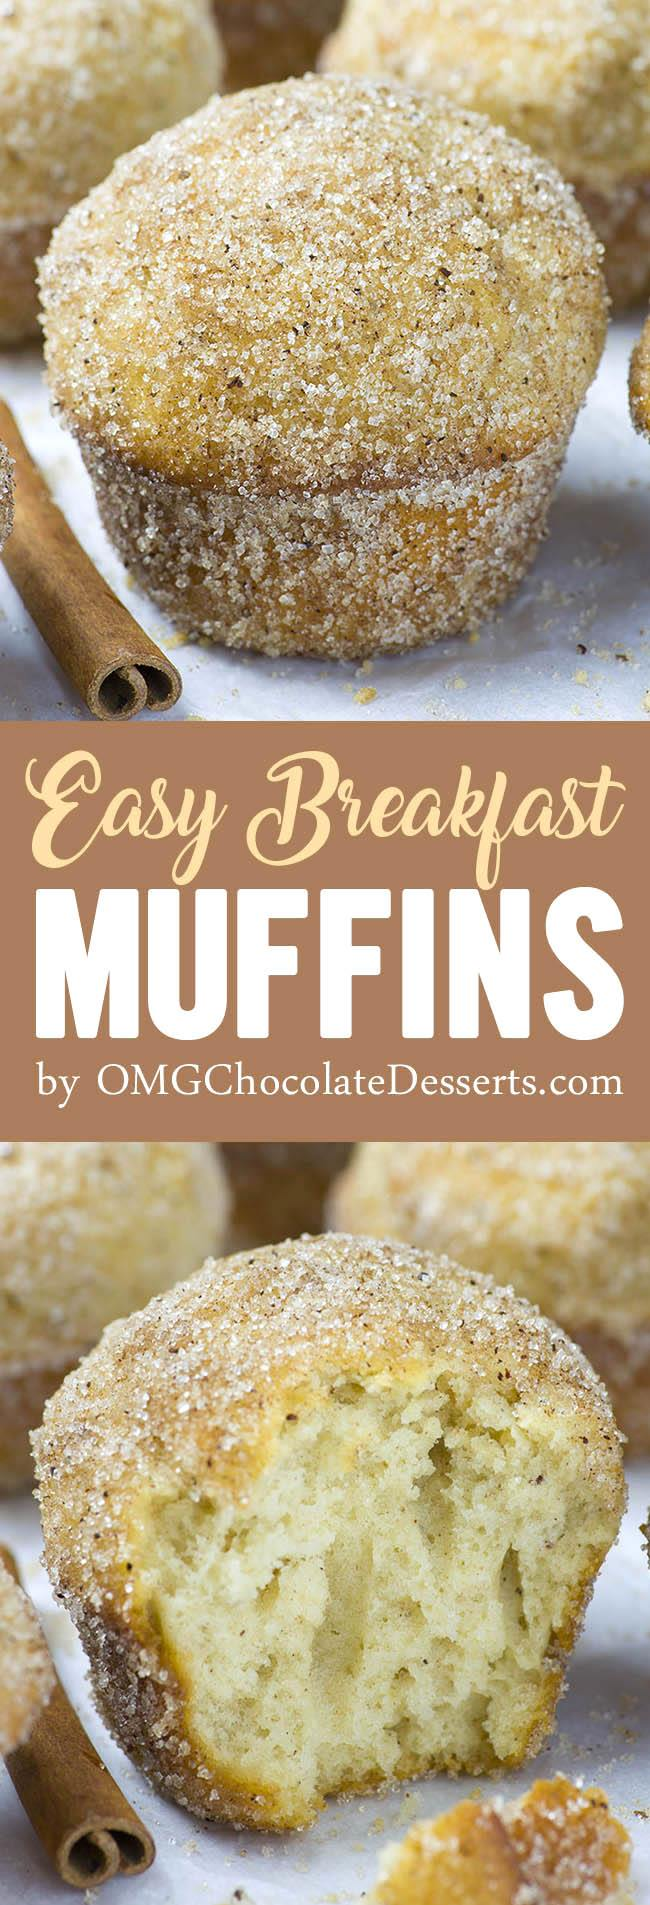 Easy Breakfast Muffins Homemade Make Ahead Breakfast